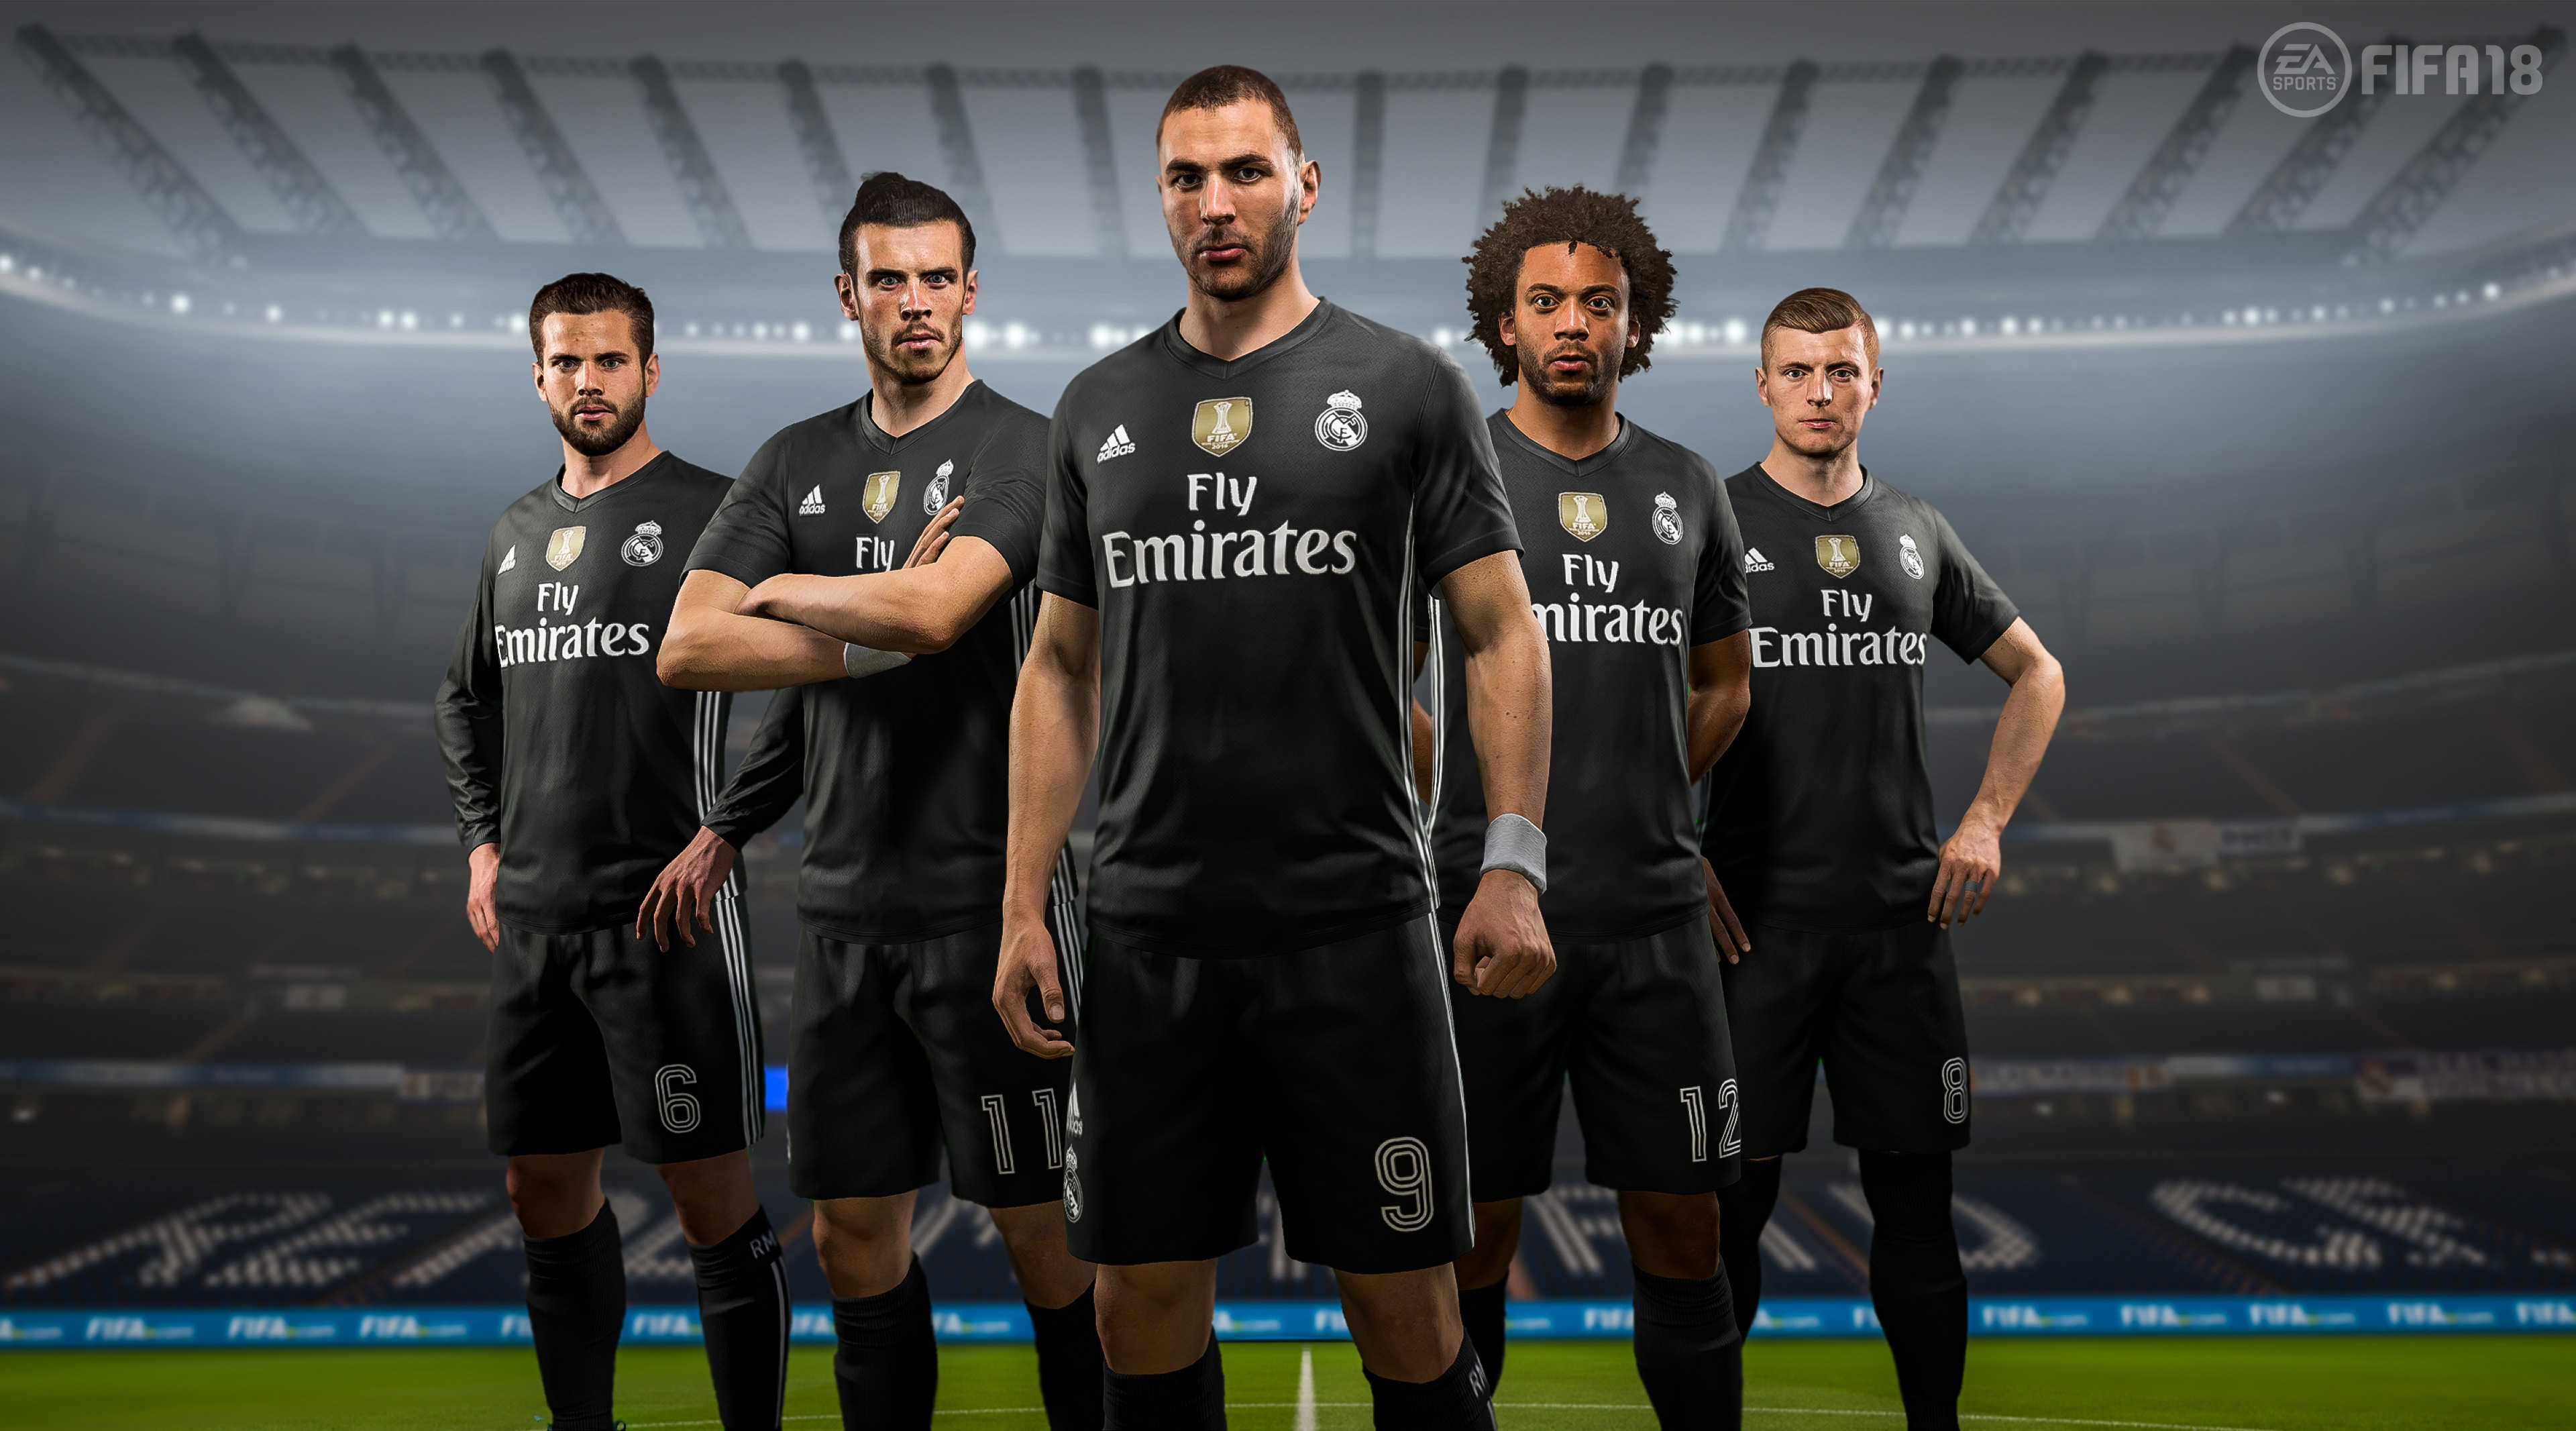 Real Madrid - Fifa18